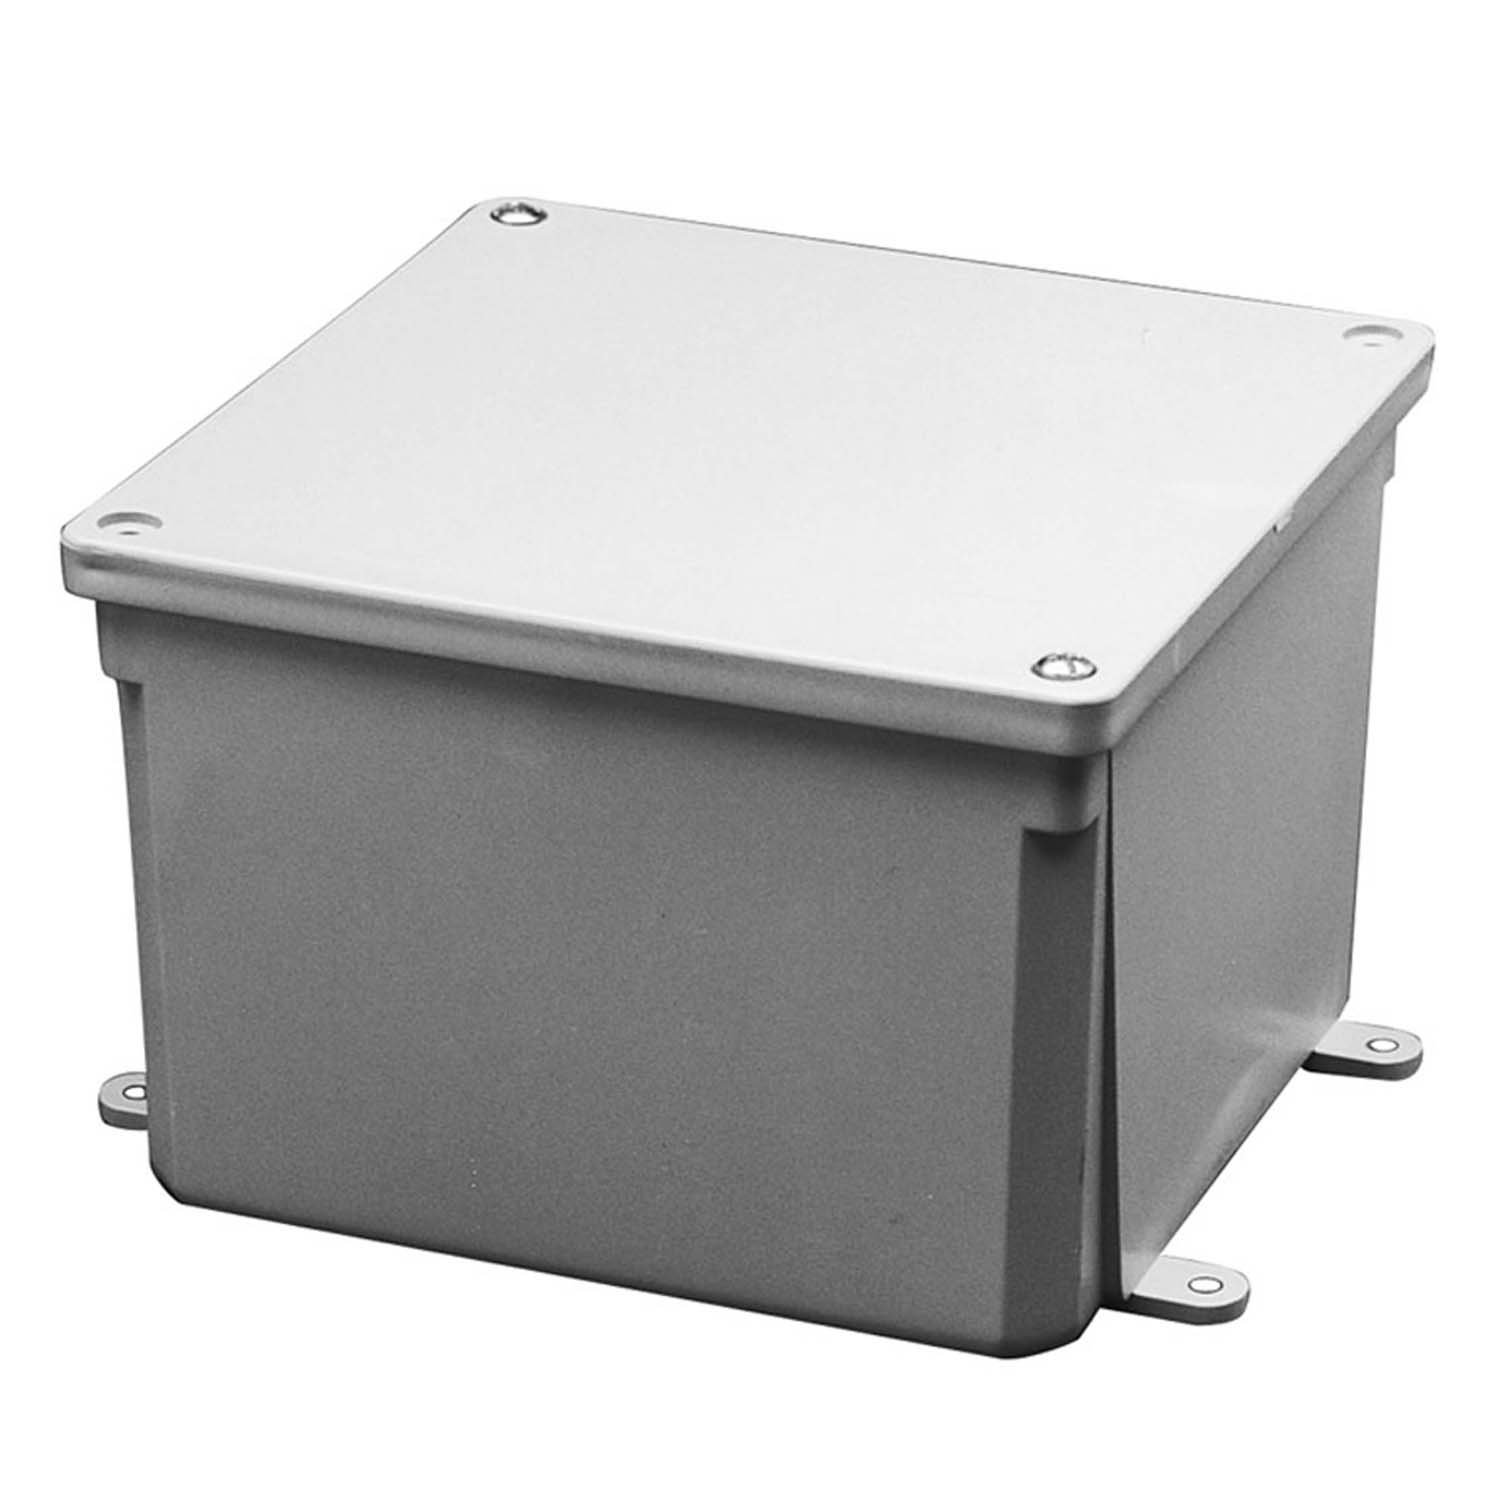 CARLON E989NNJ 4X4X2 JUNCTION BOX